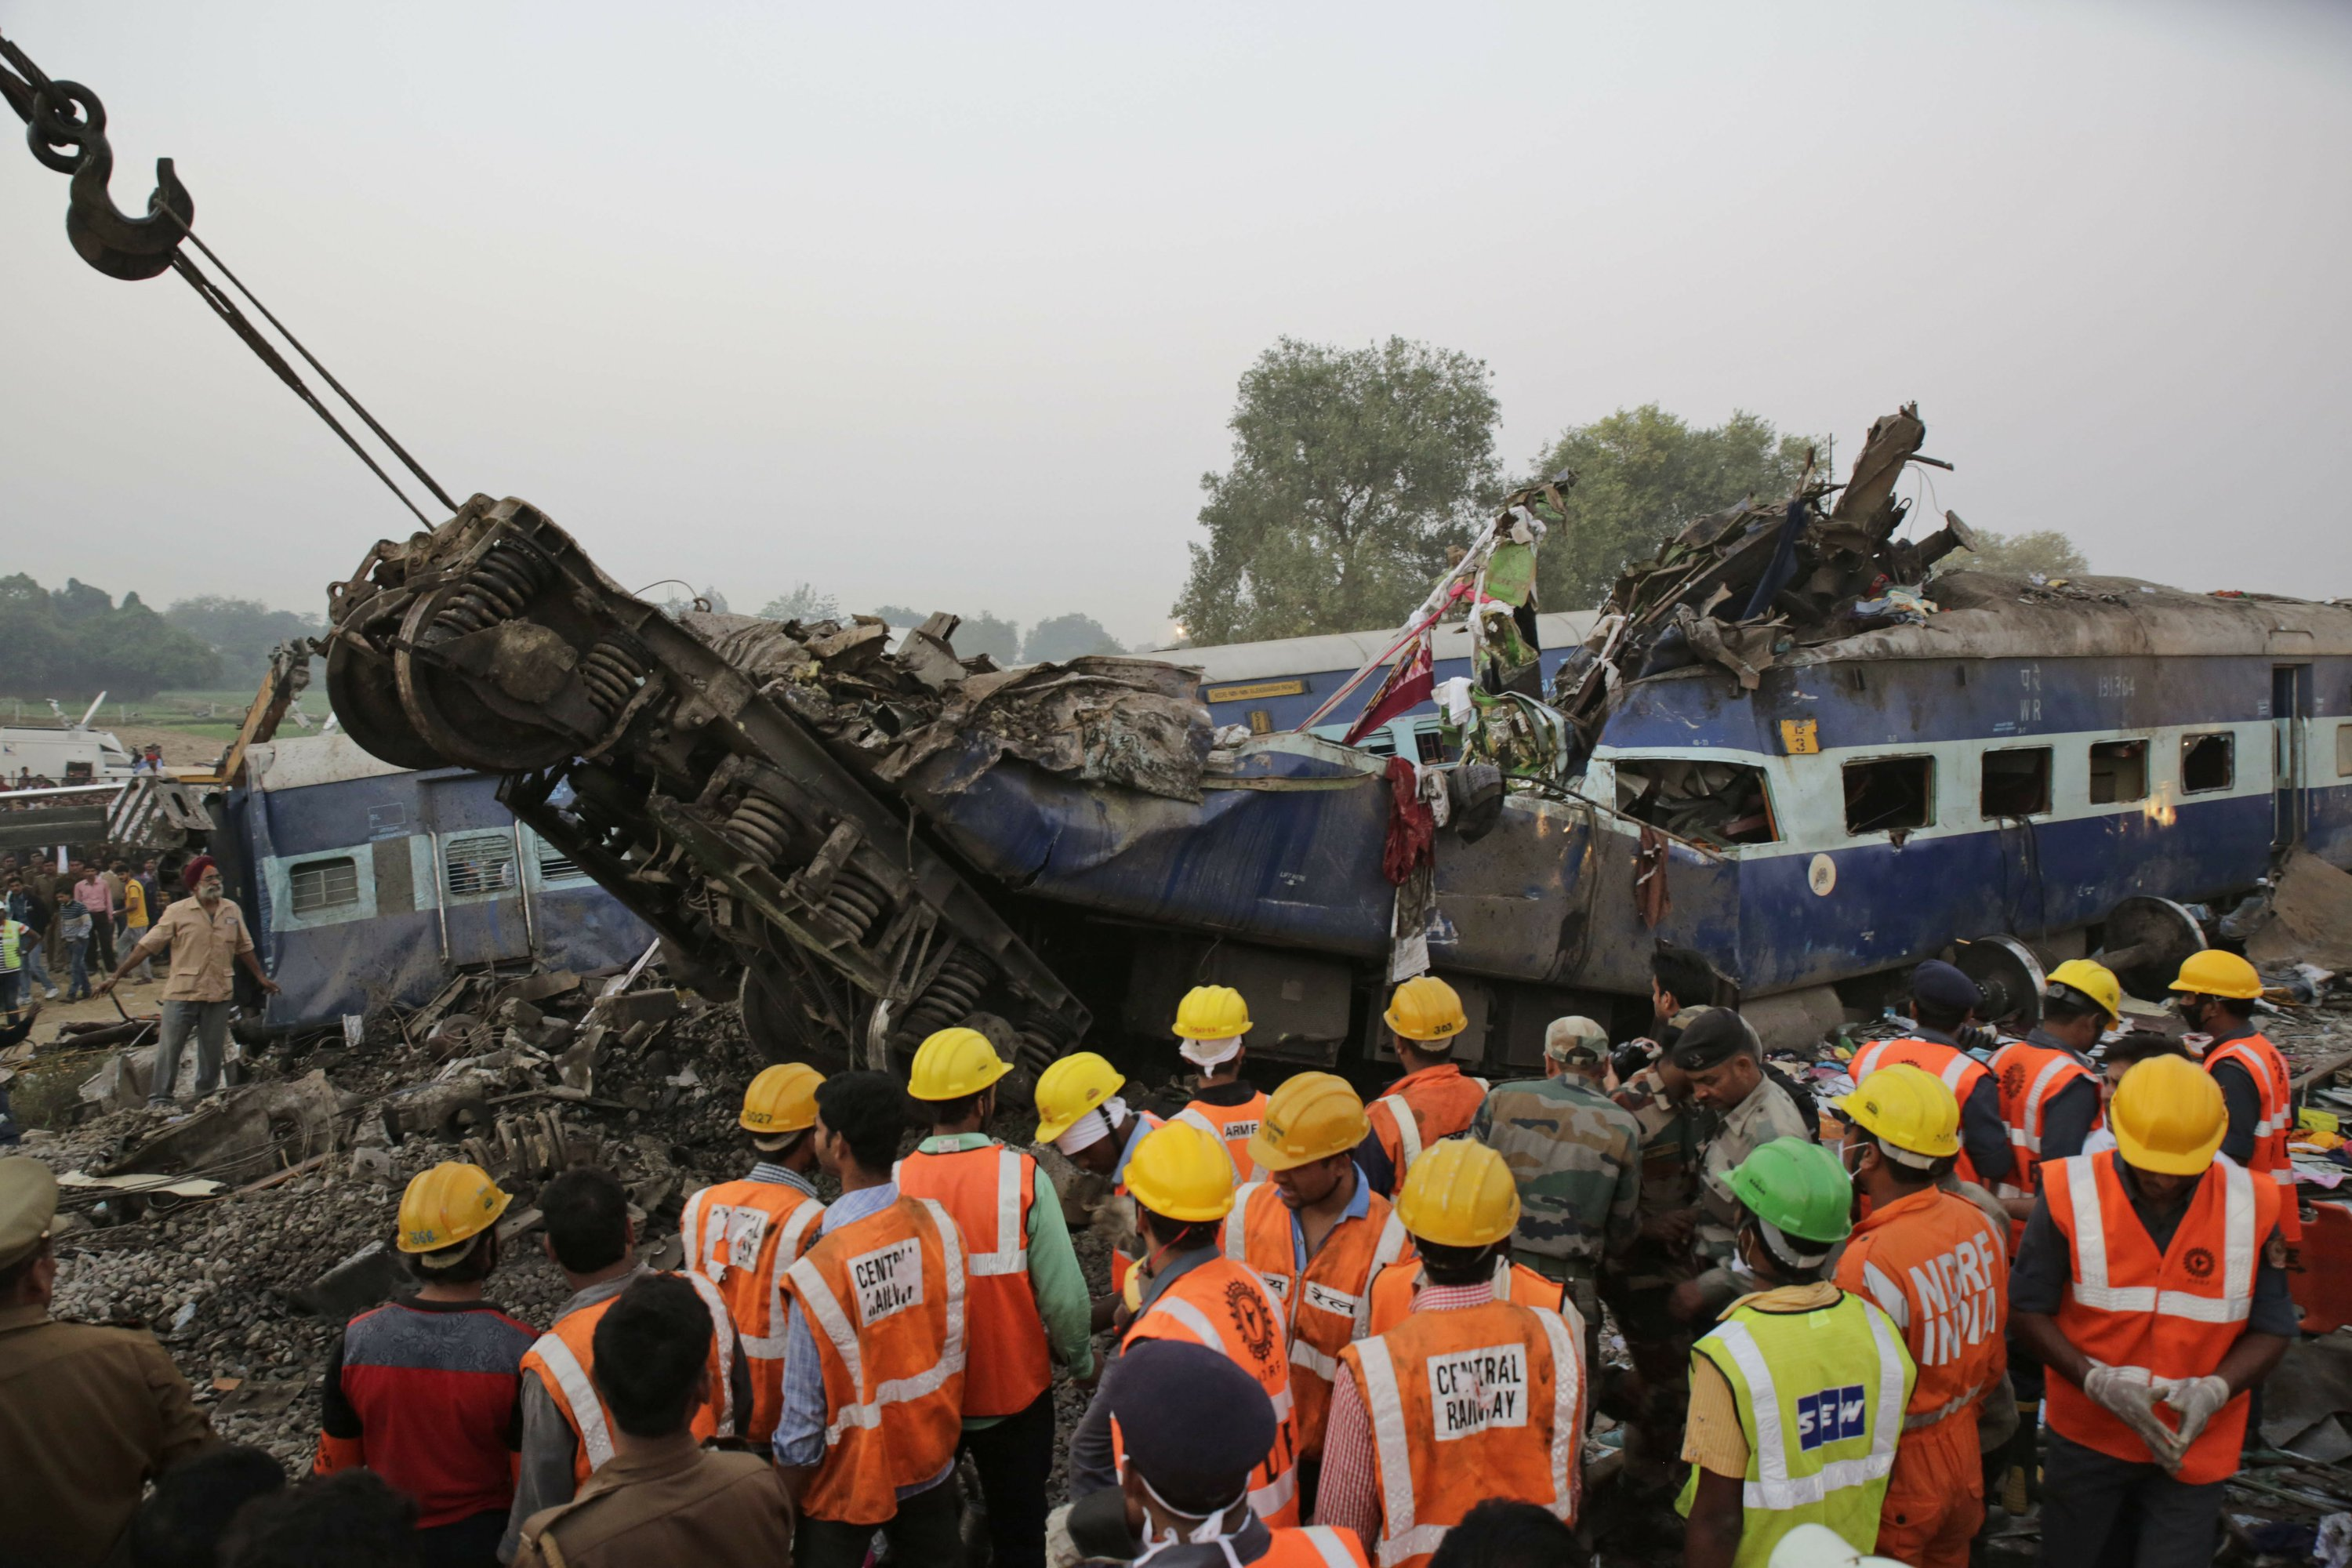 Rescuers finish search of Indian train wreck, 127 dead